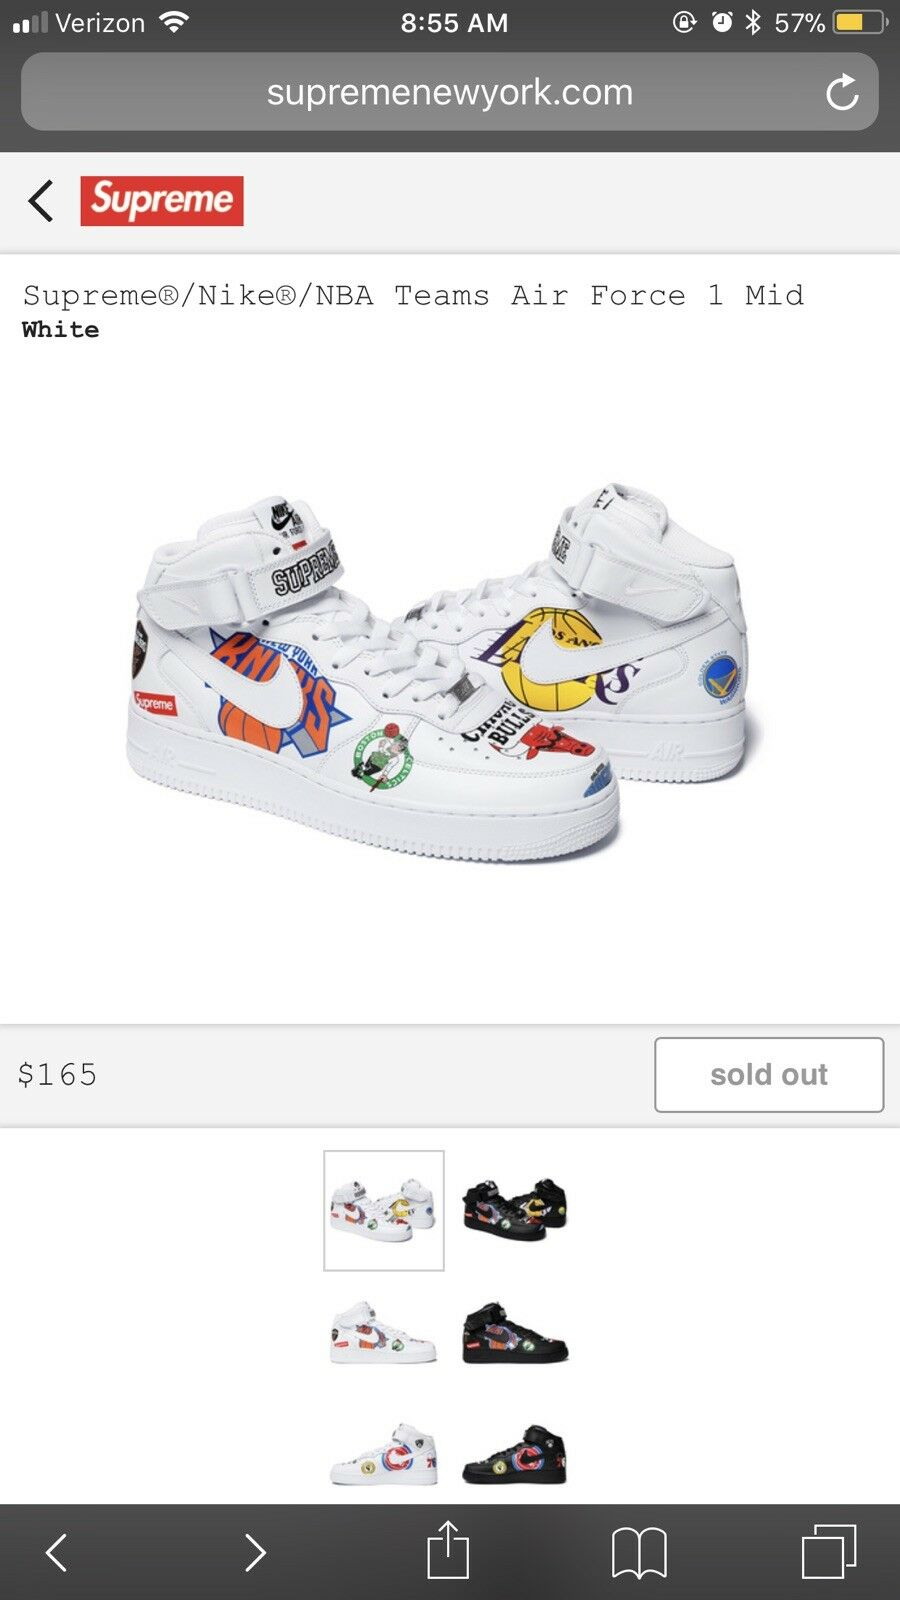 Supreme Nike NBA Air Force 1 MId White Size 10.5 - (Confirmed Order)